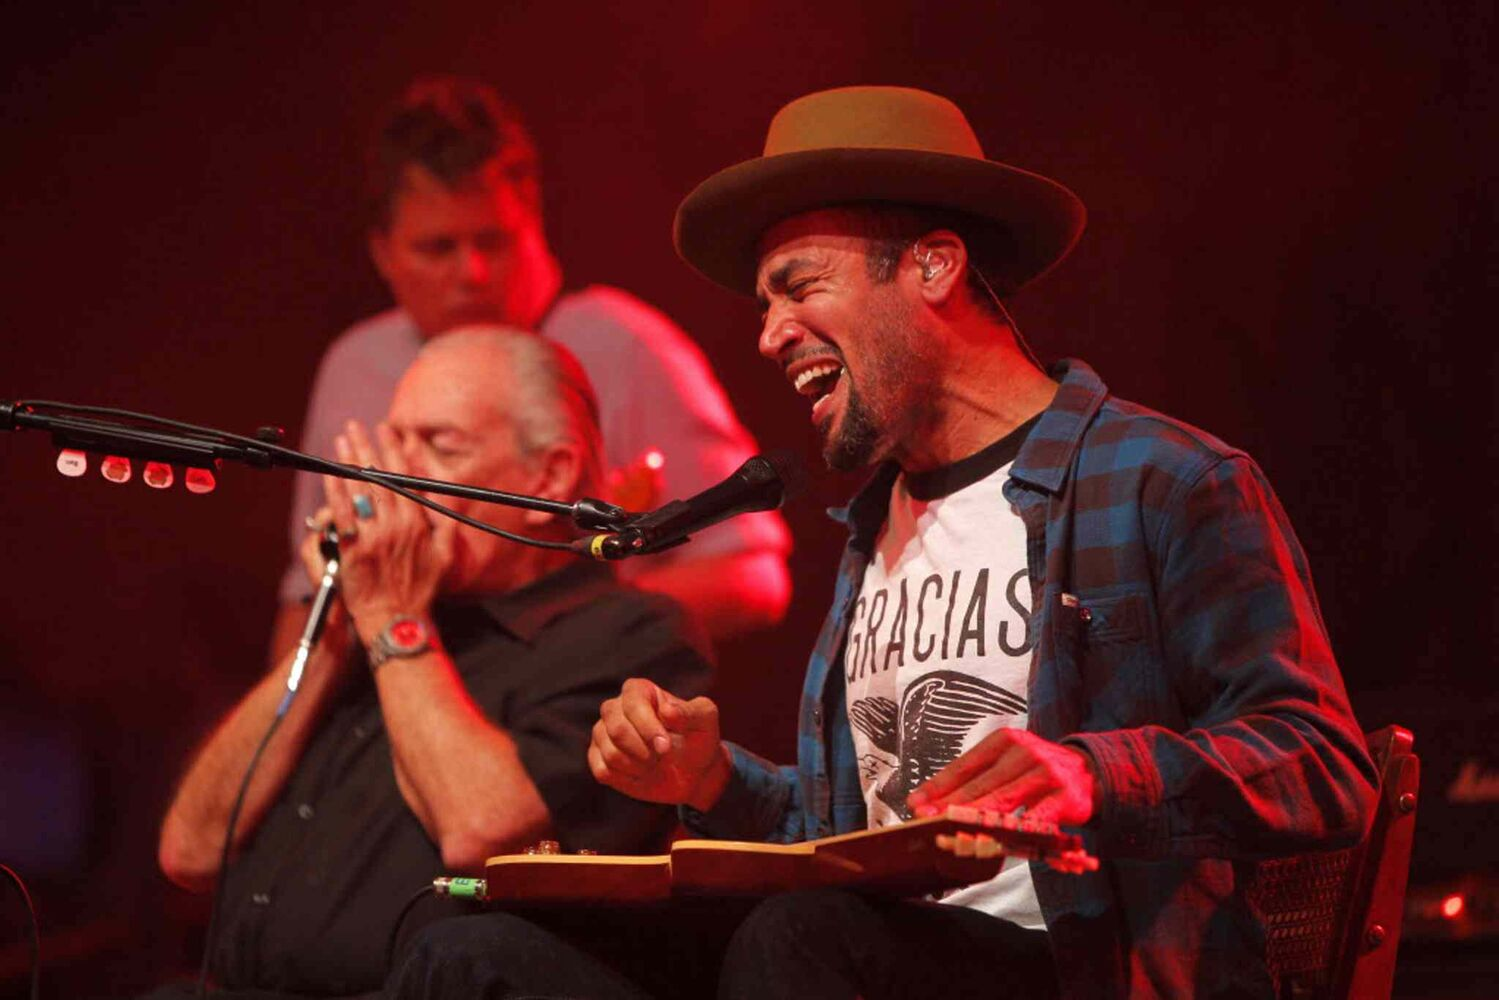 Ben Harper plays guitar on the Folk Fest's Main Stage Thursday night. He is touring with blues harmonica musician Charlie Musselwhite.  (Boris Minkevich / Winnipeg Free Press)